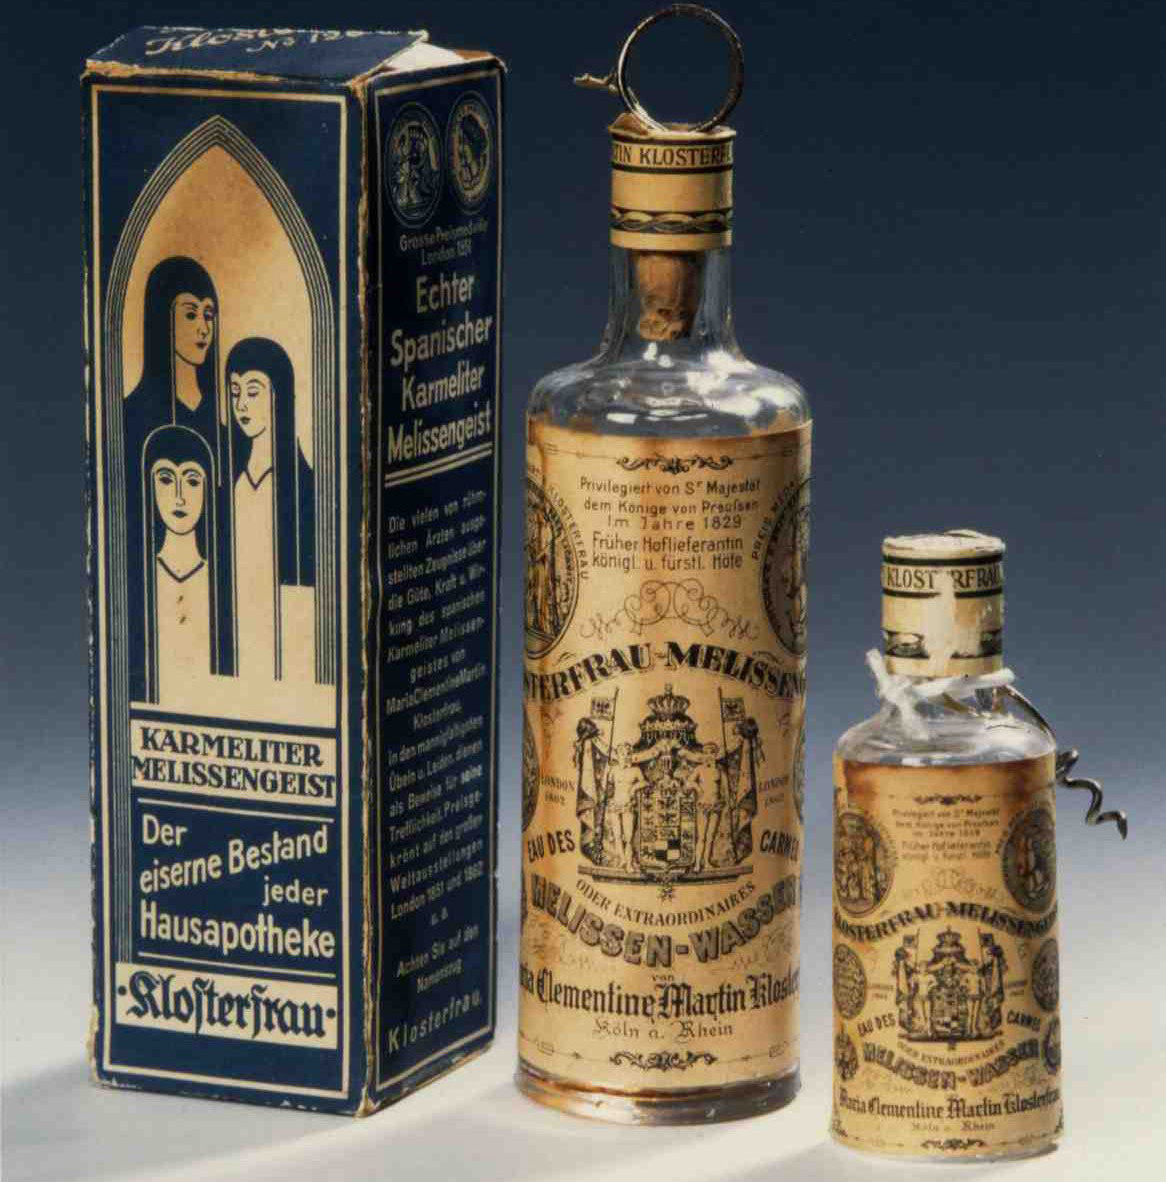 A historic bottle of Klosterfrau Melissengeist